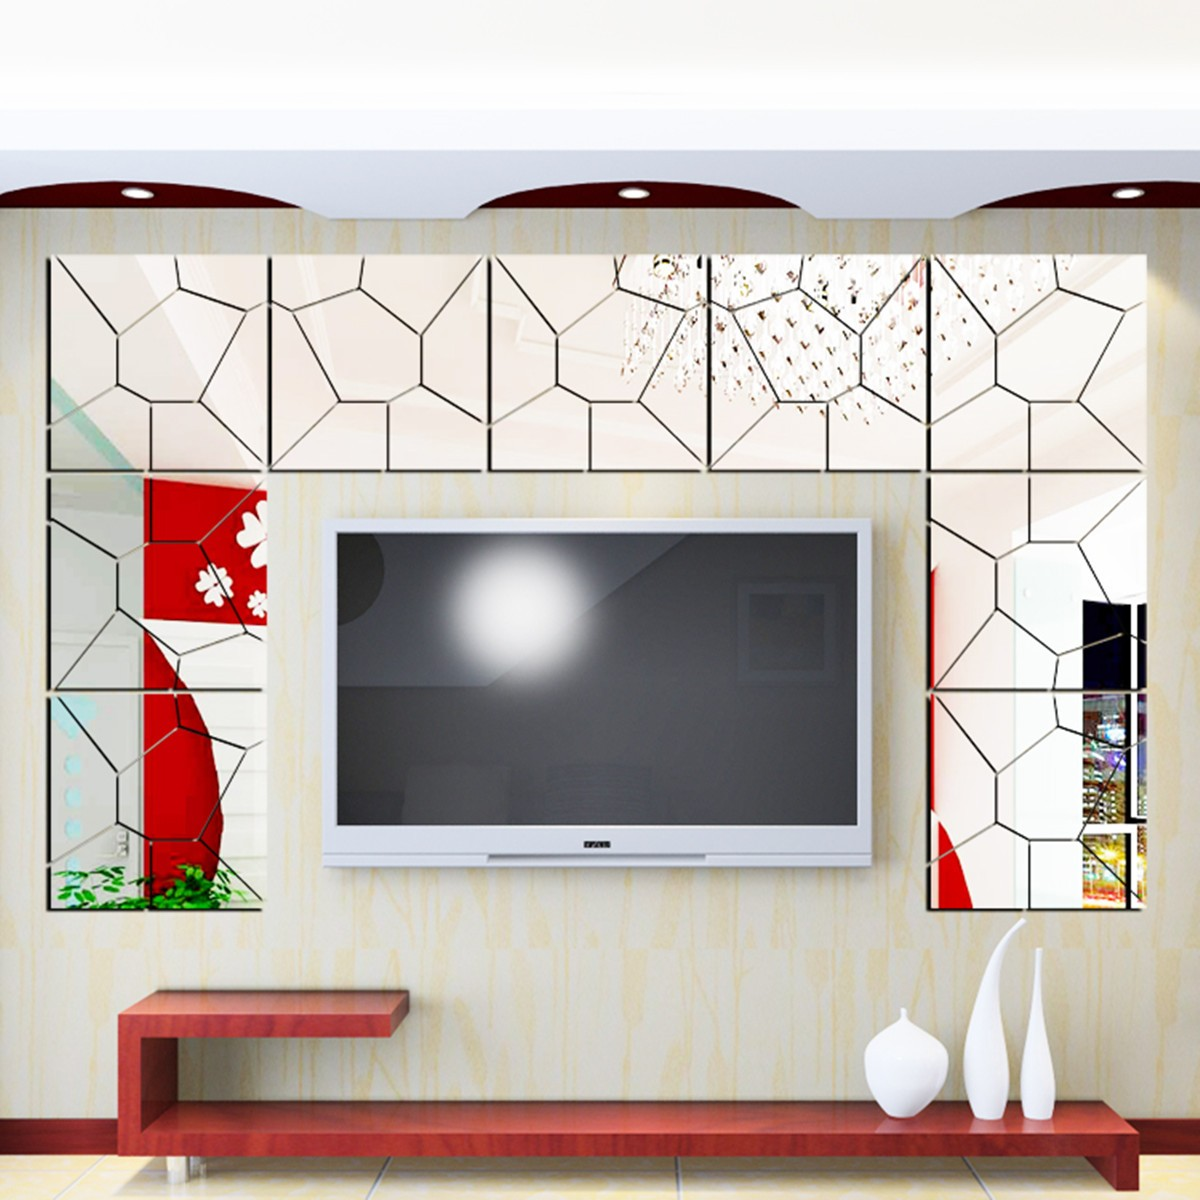 35PCS Self Adhesive 3D DIY Acrylic Removable Mirror Tile Acrylic Mirror Sheets Mirror Decal Art Mural Wall Sticker Home for Home Living Room Bedroom Decor